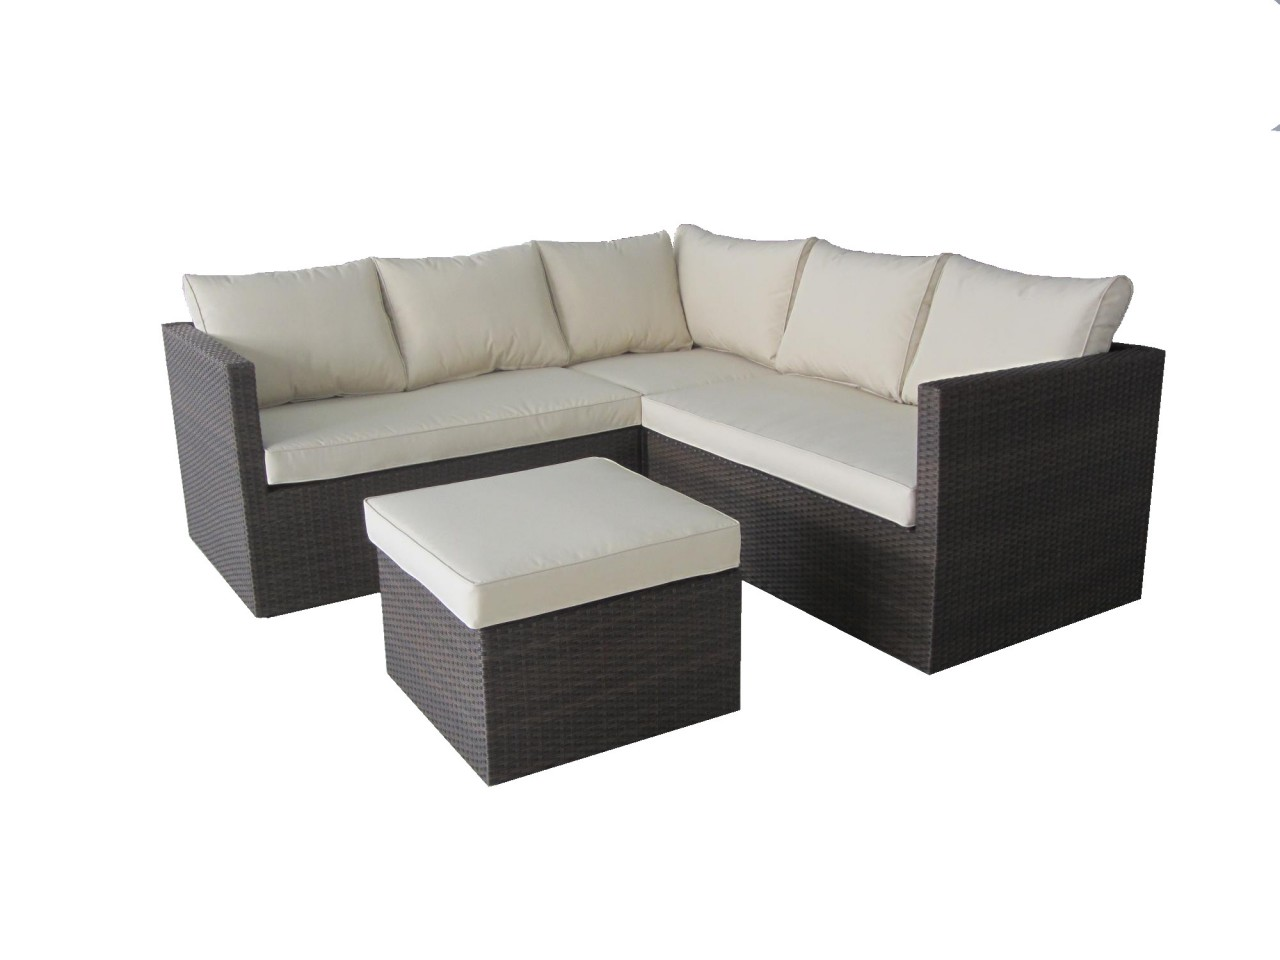 Cannes 4 Pc Rattan Corner Sofa Set with Footstool Coffee Table Brown